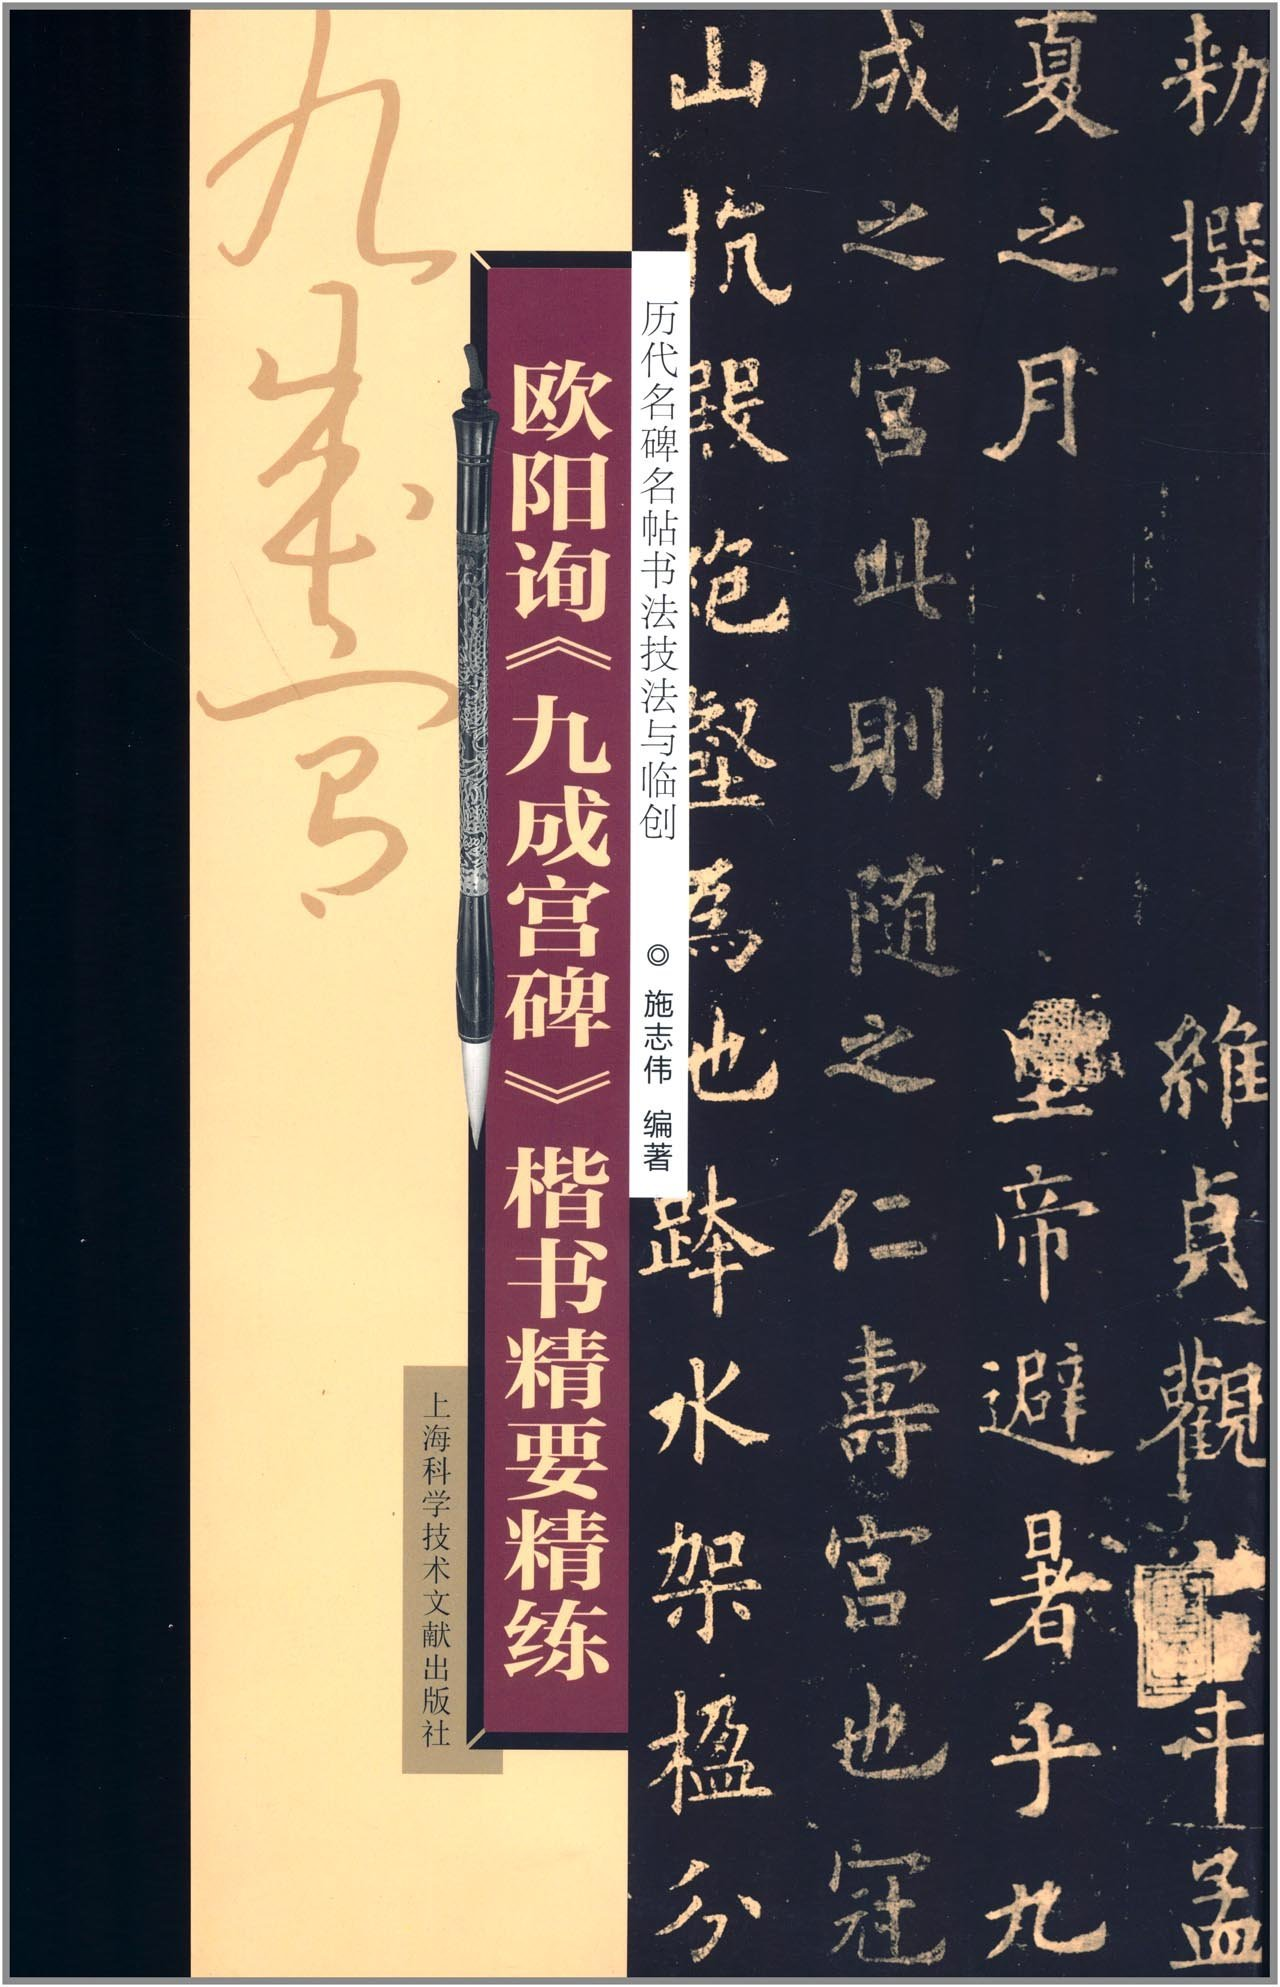 Read Online The past dynasties the name Monument Mingtie calligraphy techniques with Pro Chong: Ouyang Xun. the Jiucheng Gong the monument kaishu Essentials scouring(Chinese Edition) pdf epub